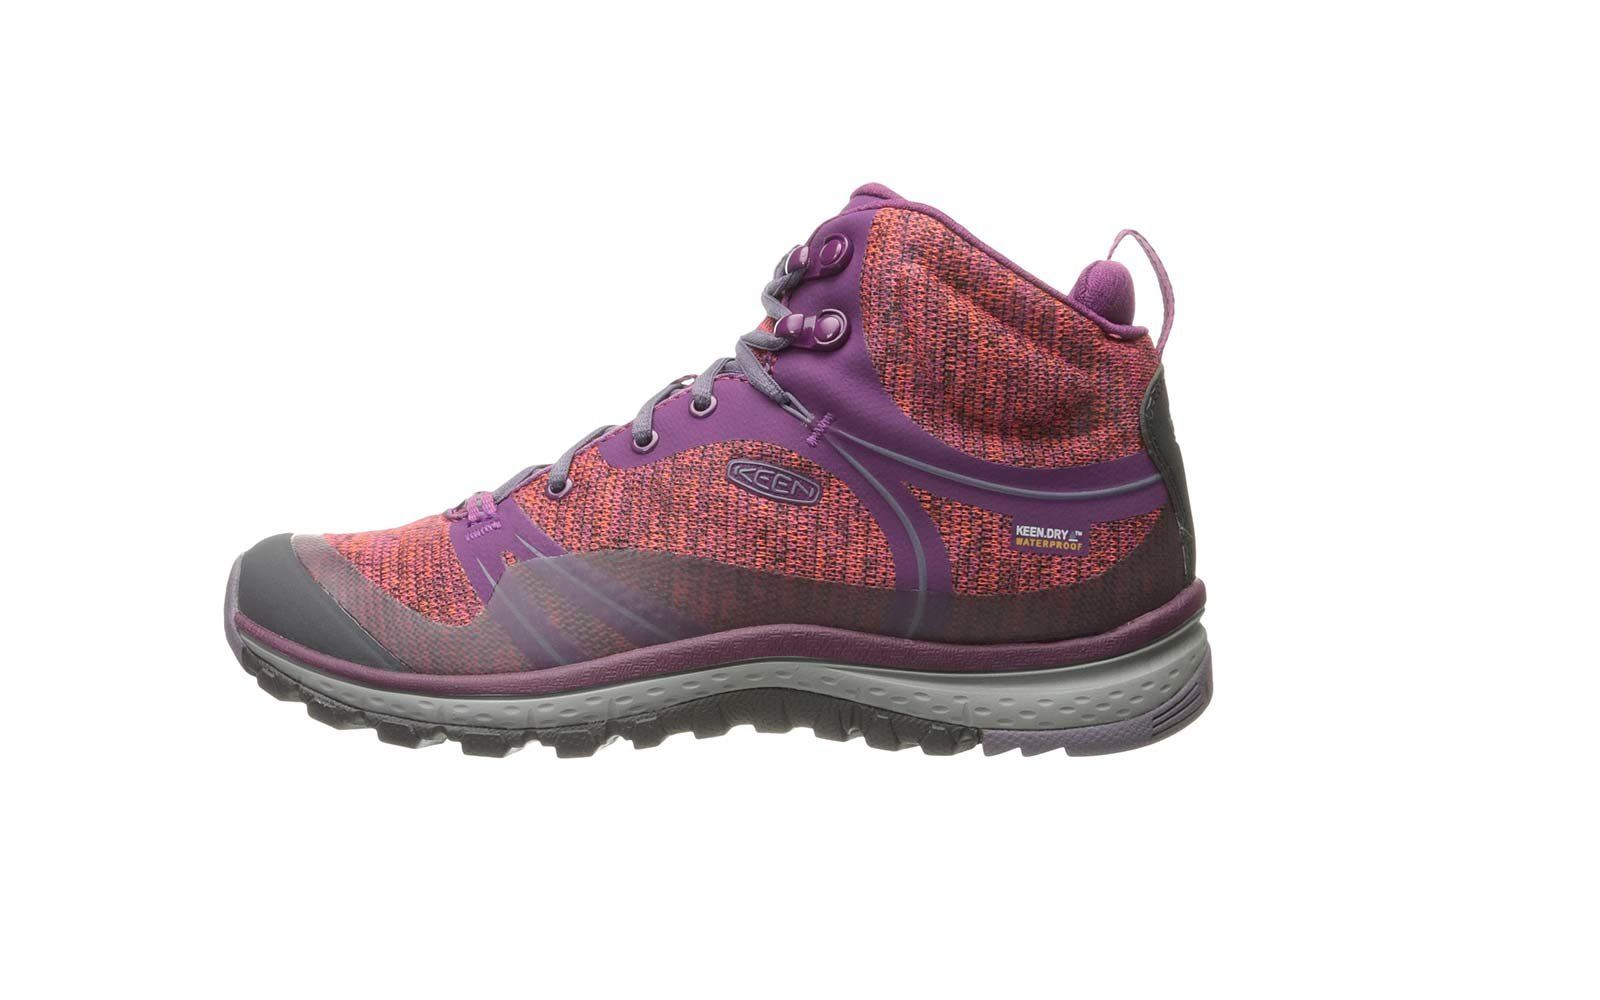 11 Cute Hiking Boots to Take You From Trail to Town | Hiking